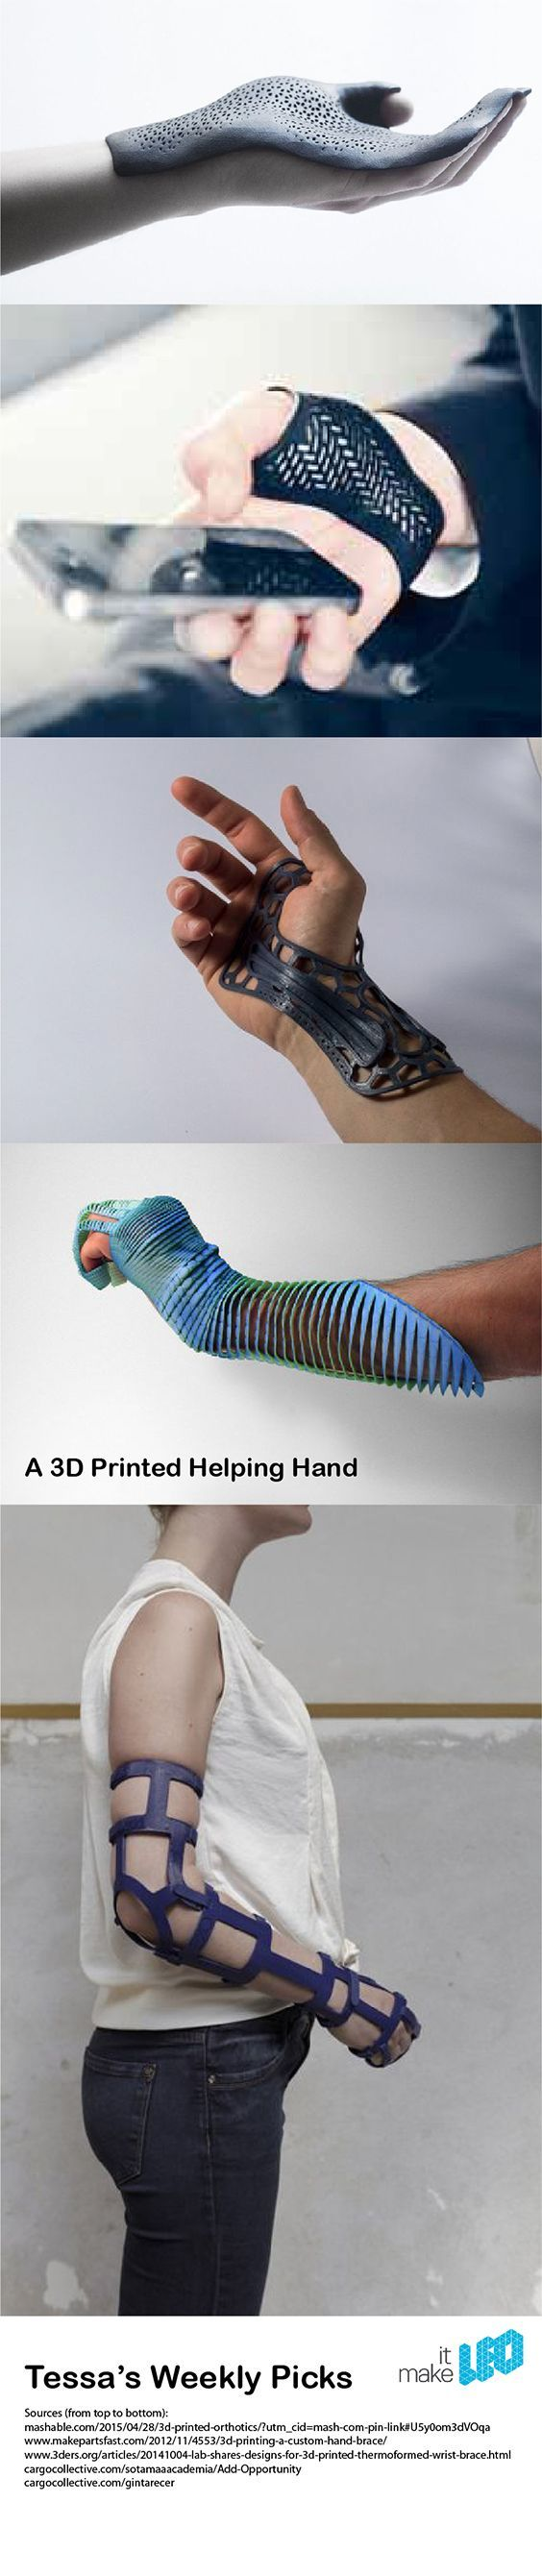 23 best Wearable Construct ion images on Pinterest | Products ...